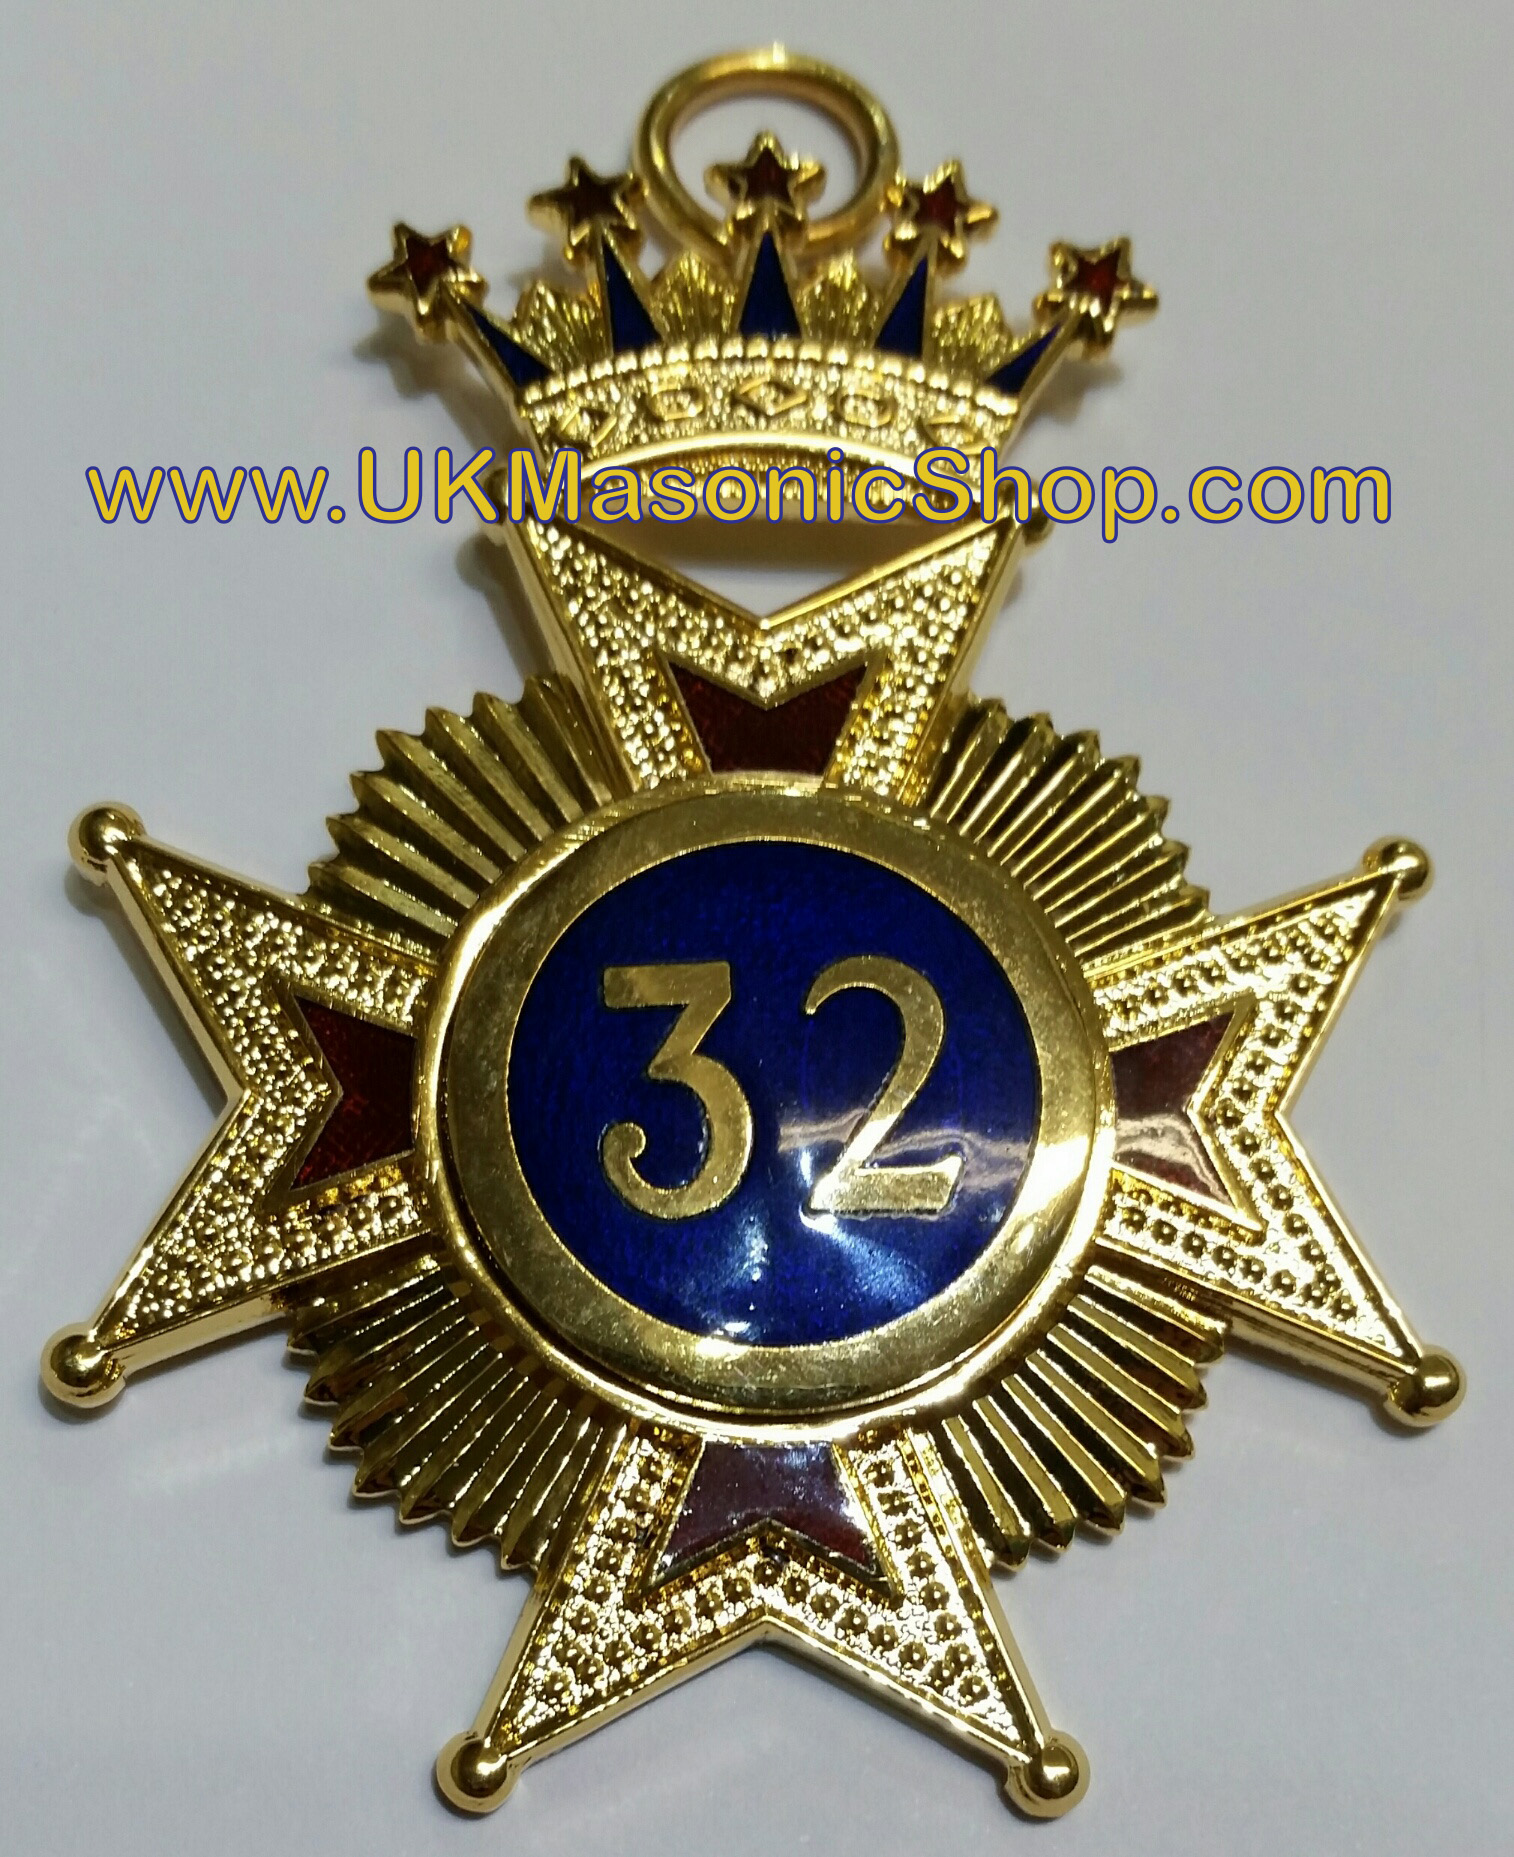 32nd degree Jewel